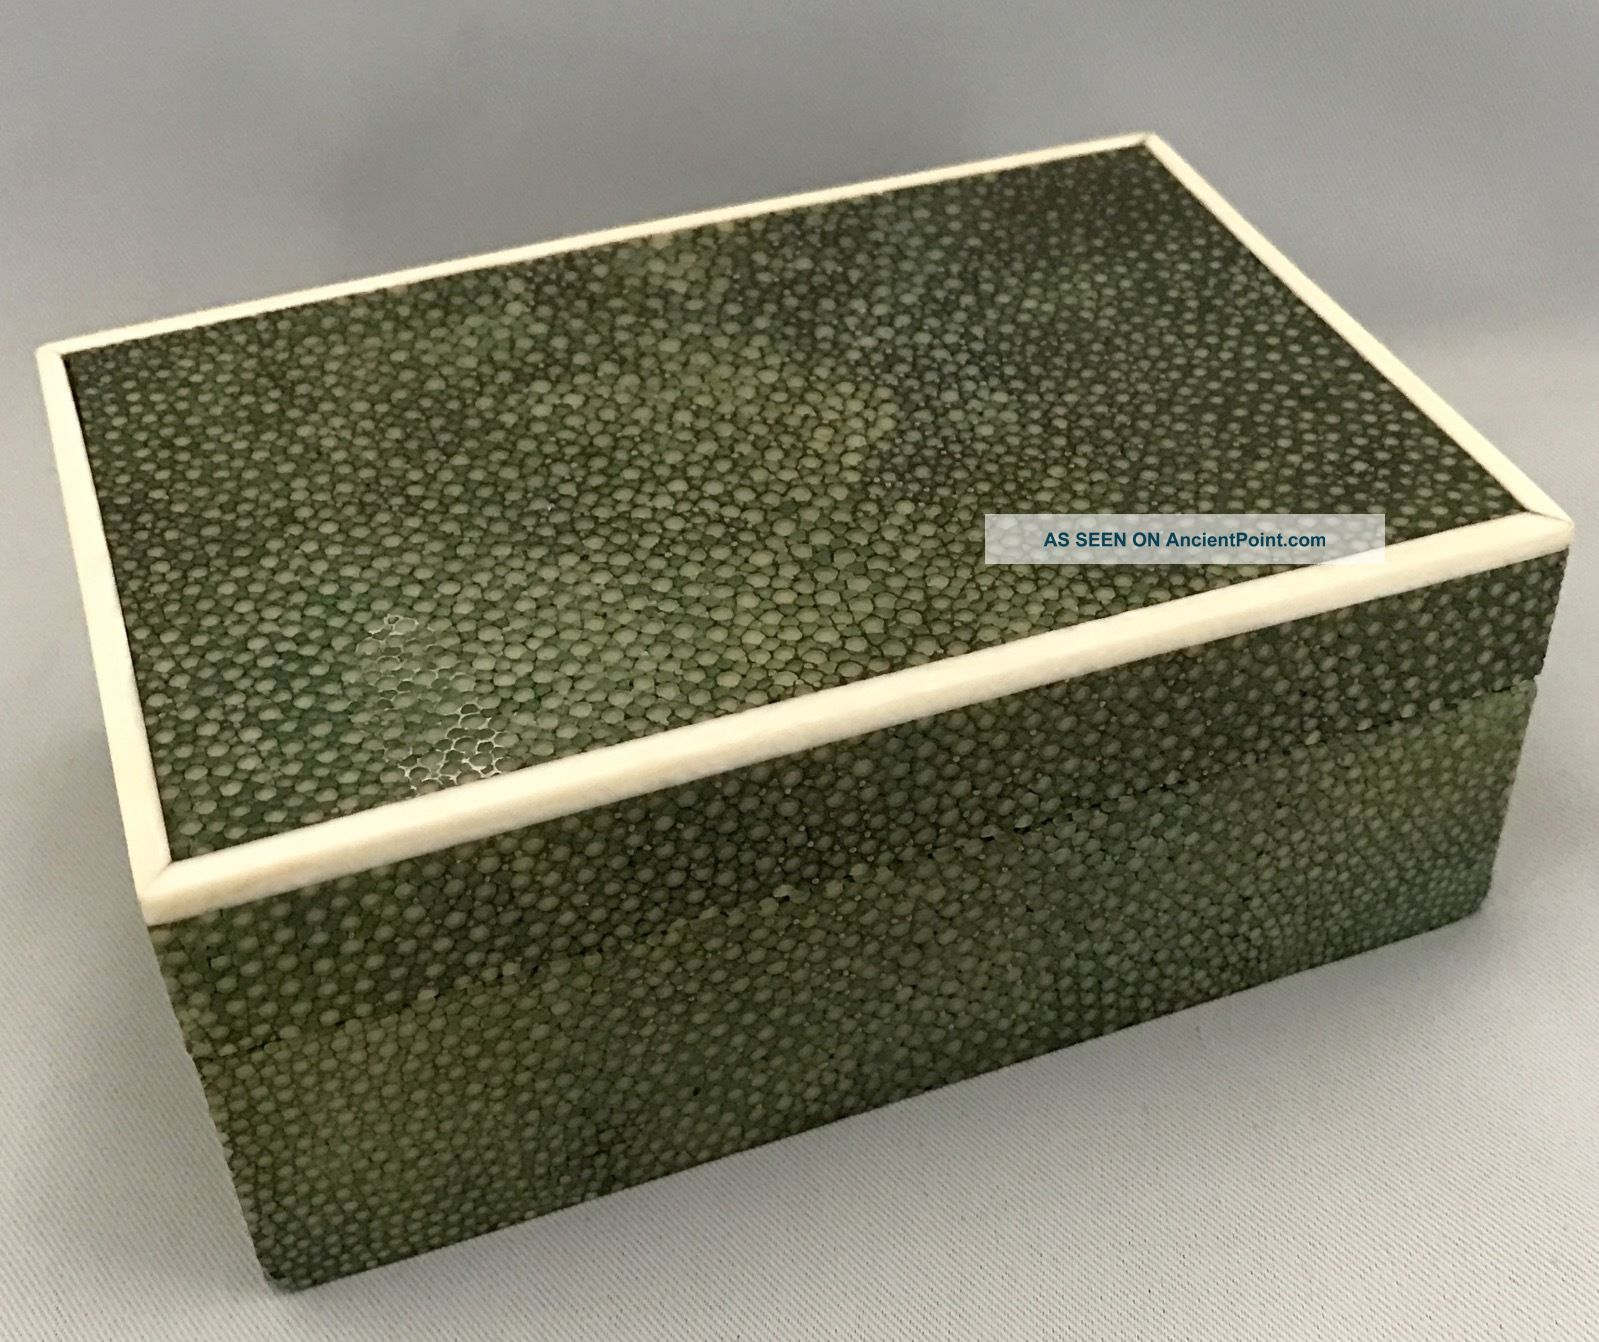 French Art Deco Period Shagreen Box With Inlaid Edges, Art Deco photo